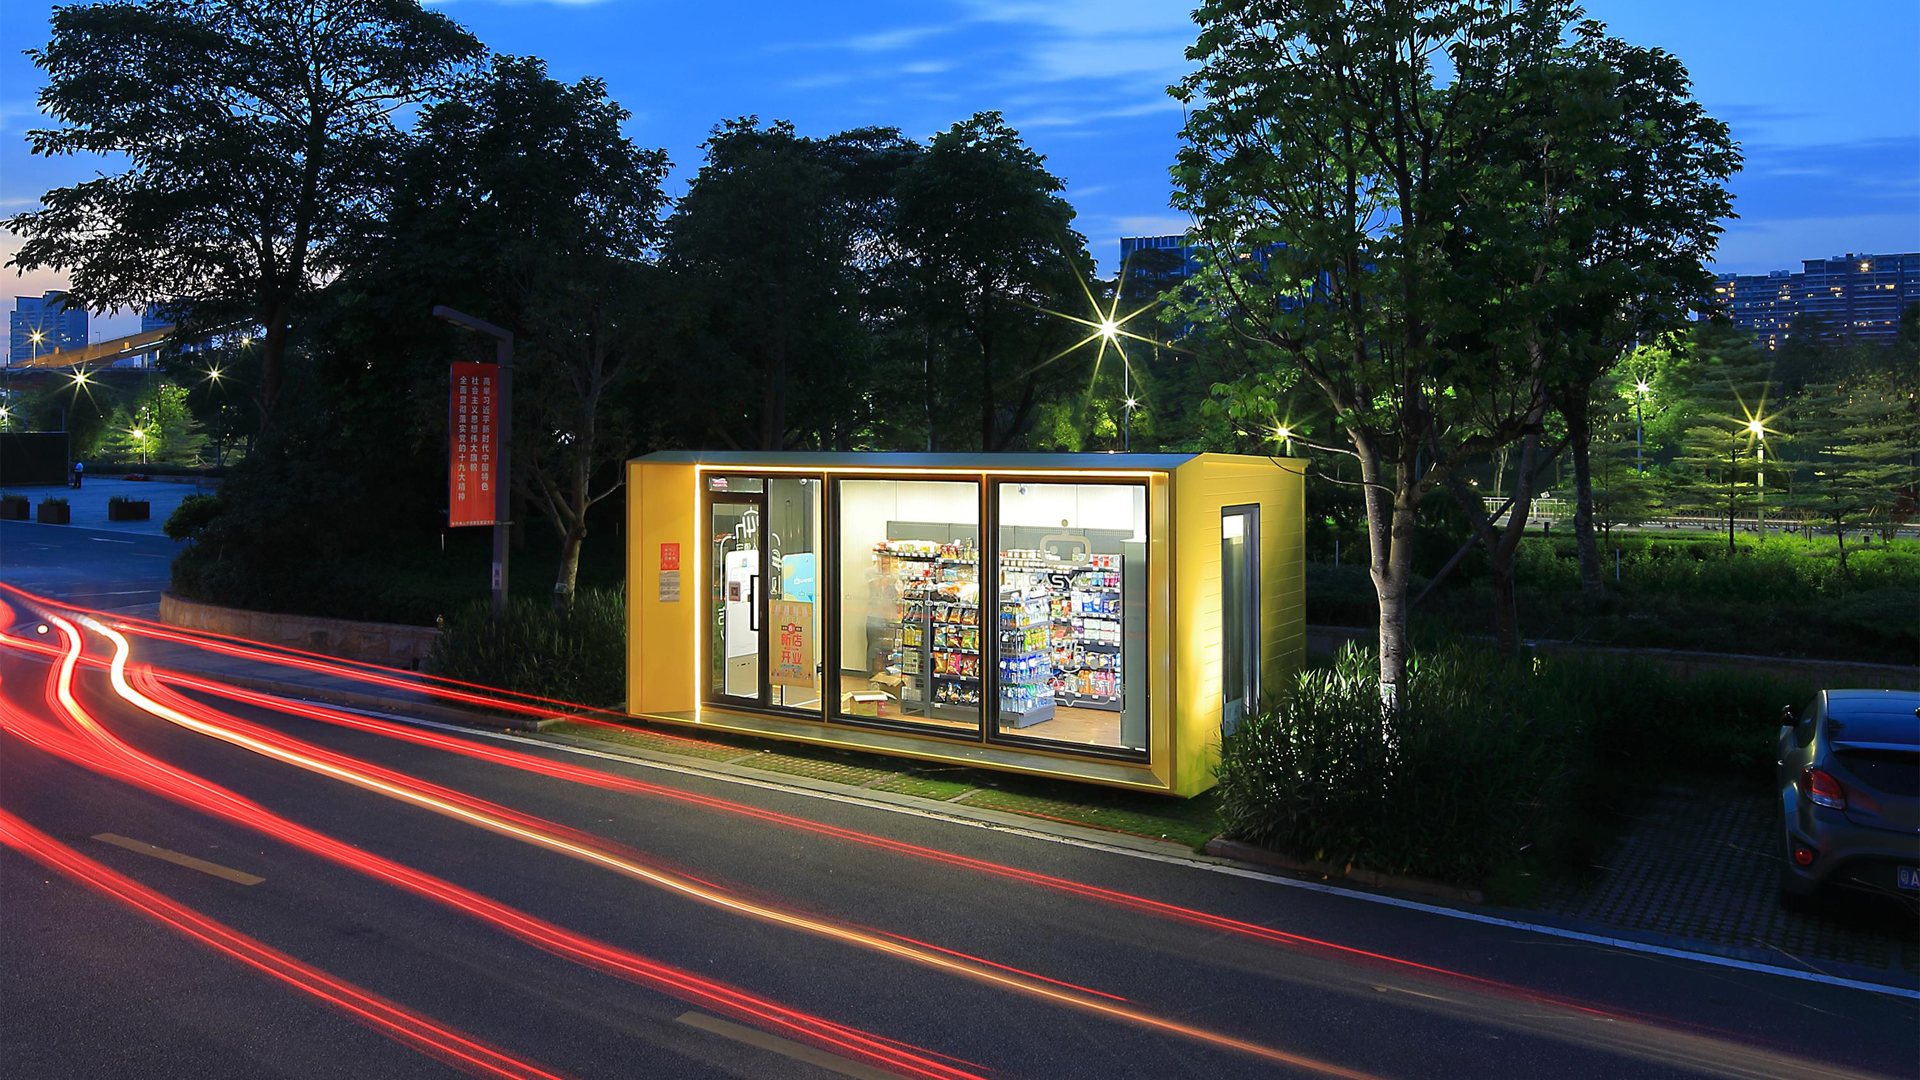 New retail projects easygo unmanned convenience store at for Mobili convenienti